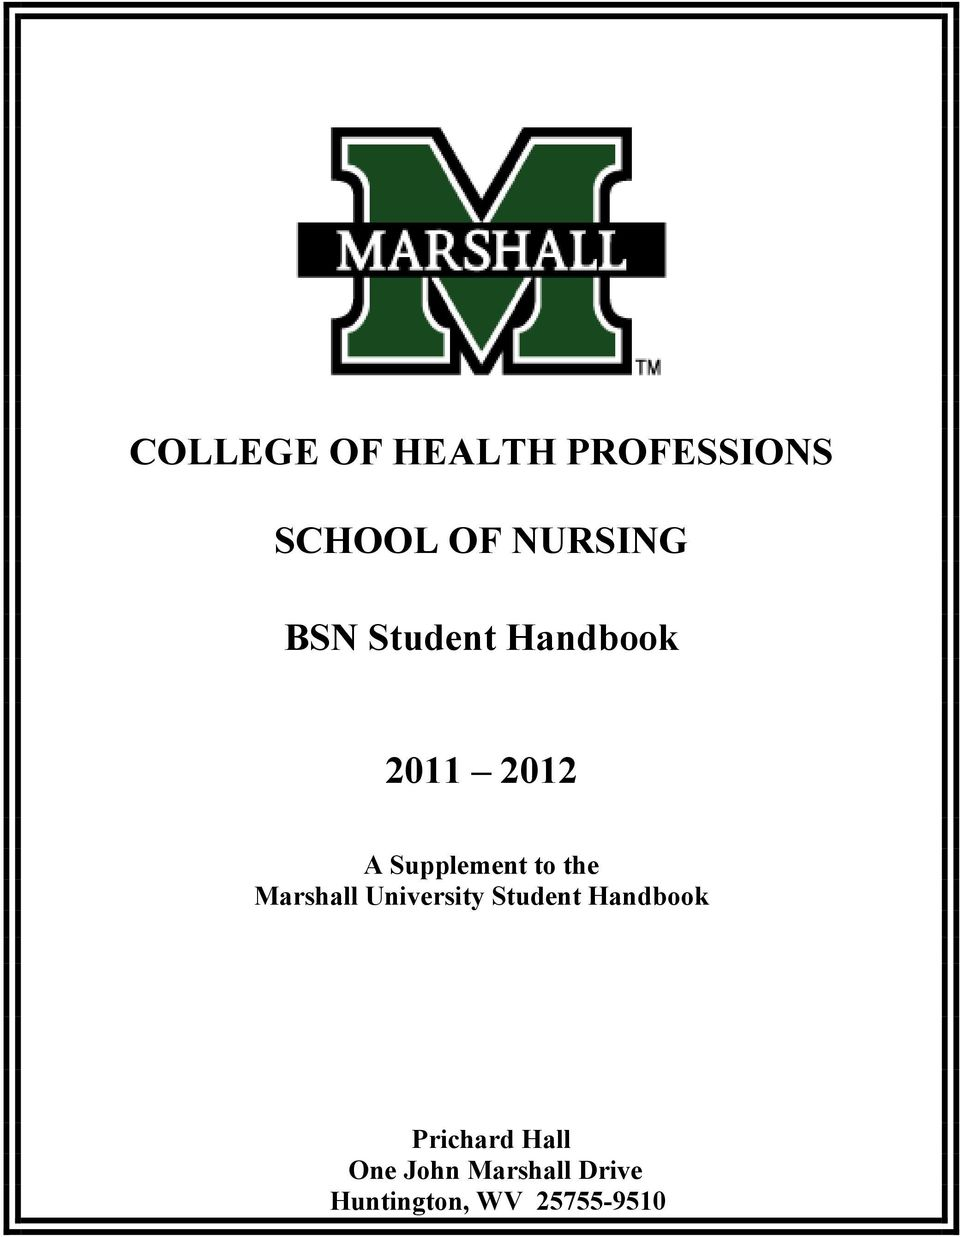 the Marshall University Student Handbook Prichard